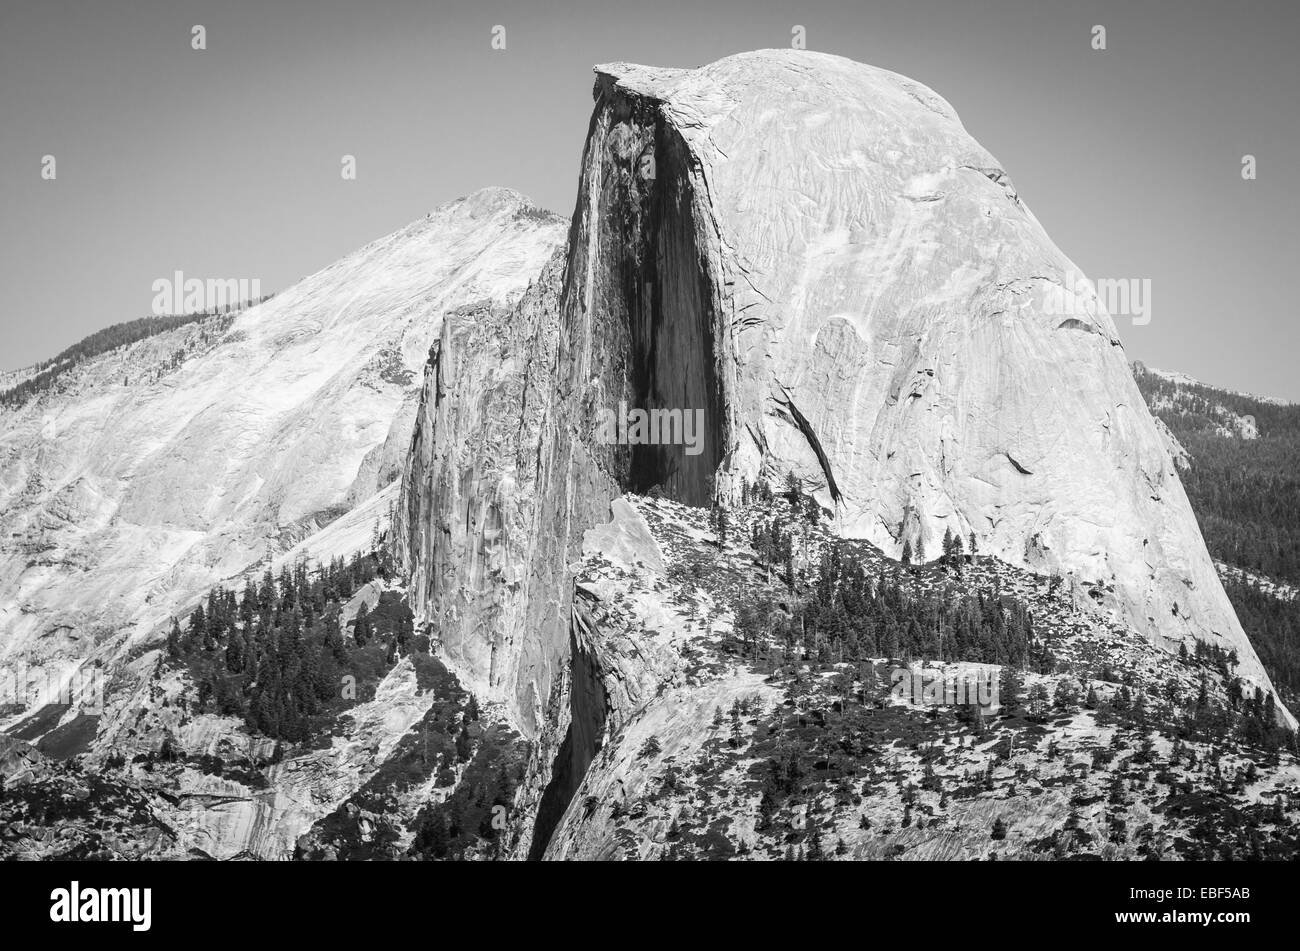 The iconic Half Dome as seen from Glacier Point in Yosemite National Park Stock Photo